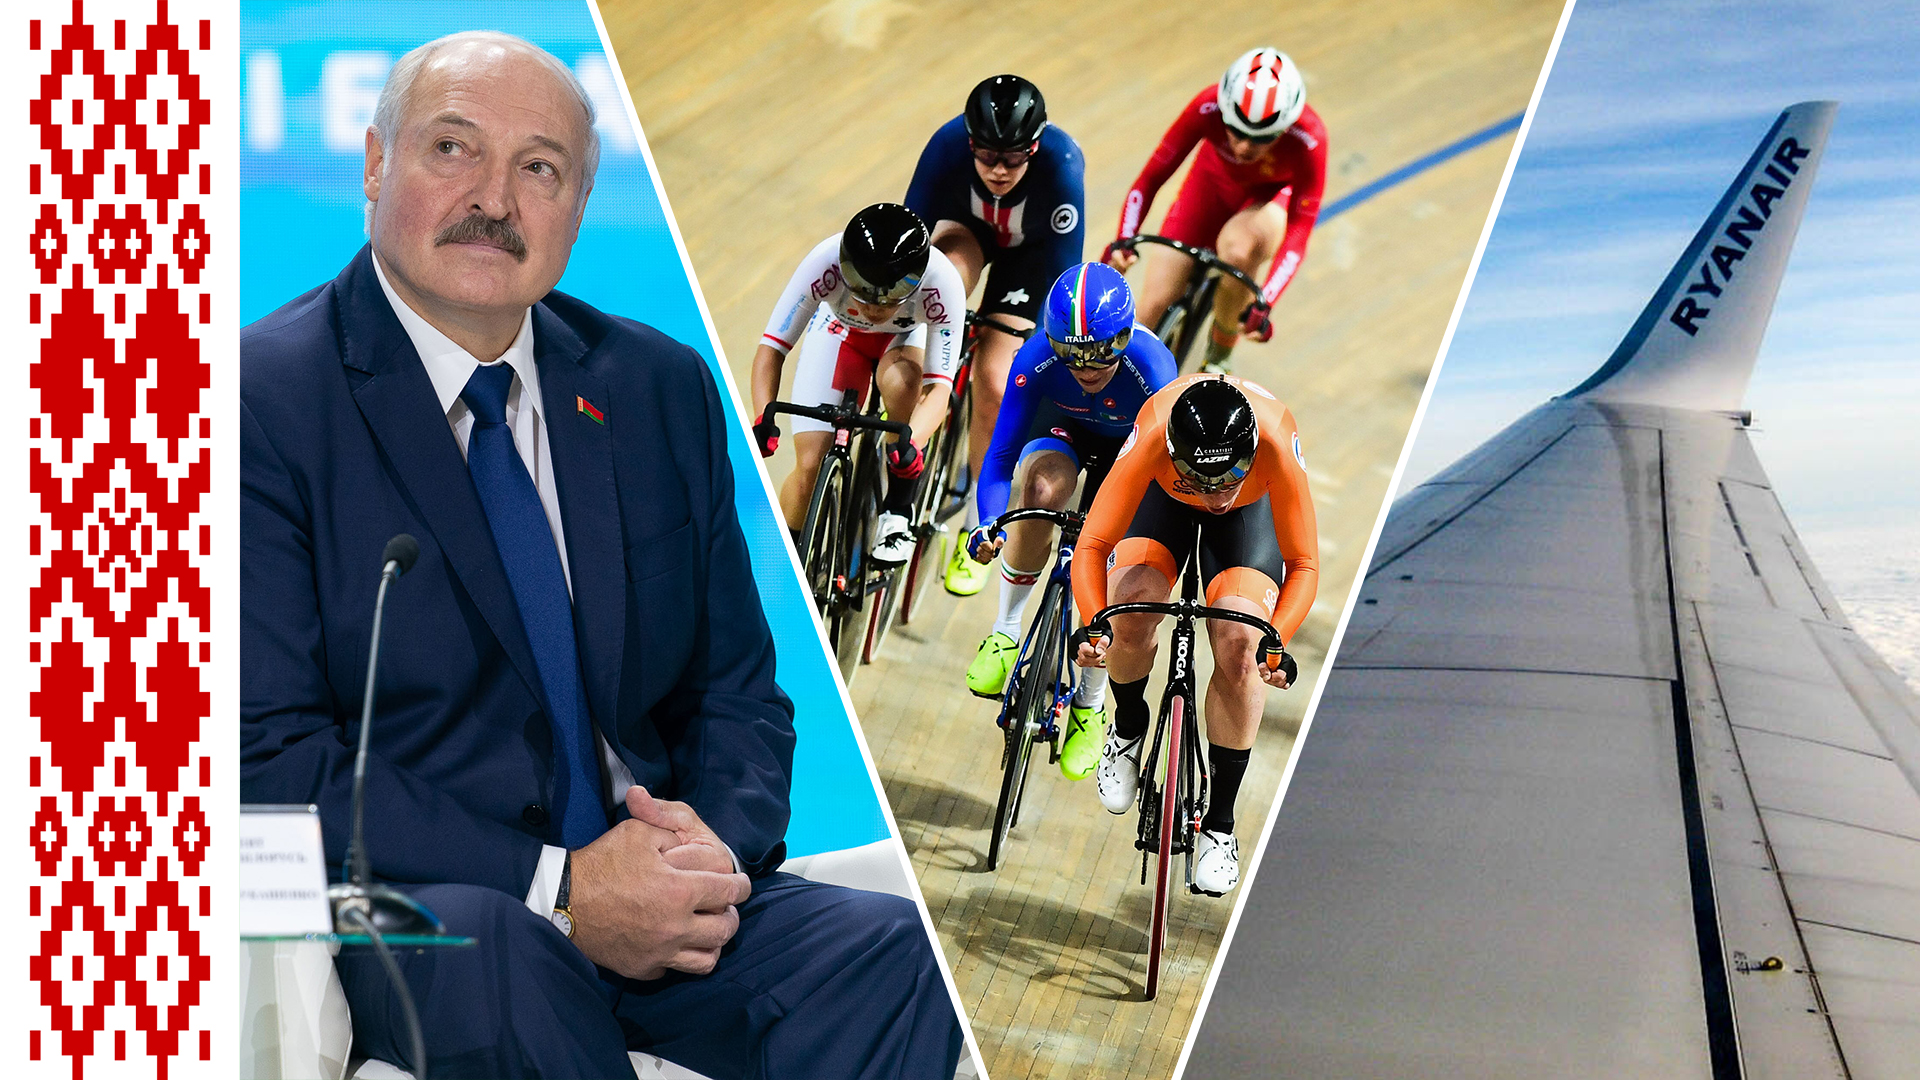 The hijacked plane, the dictator, and the cycling championship